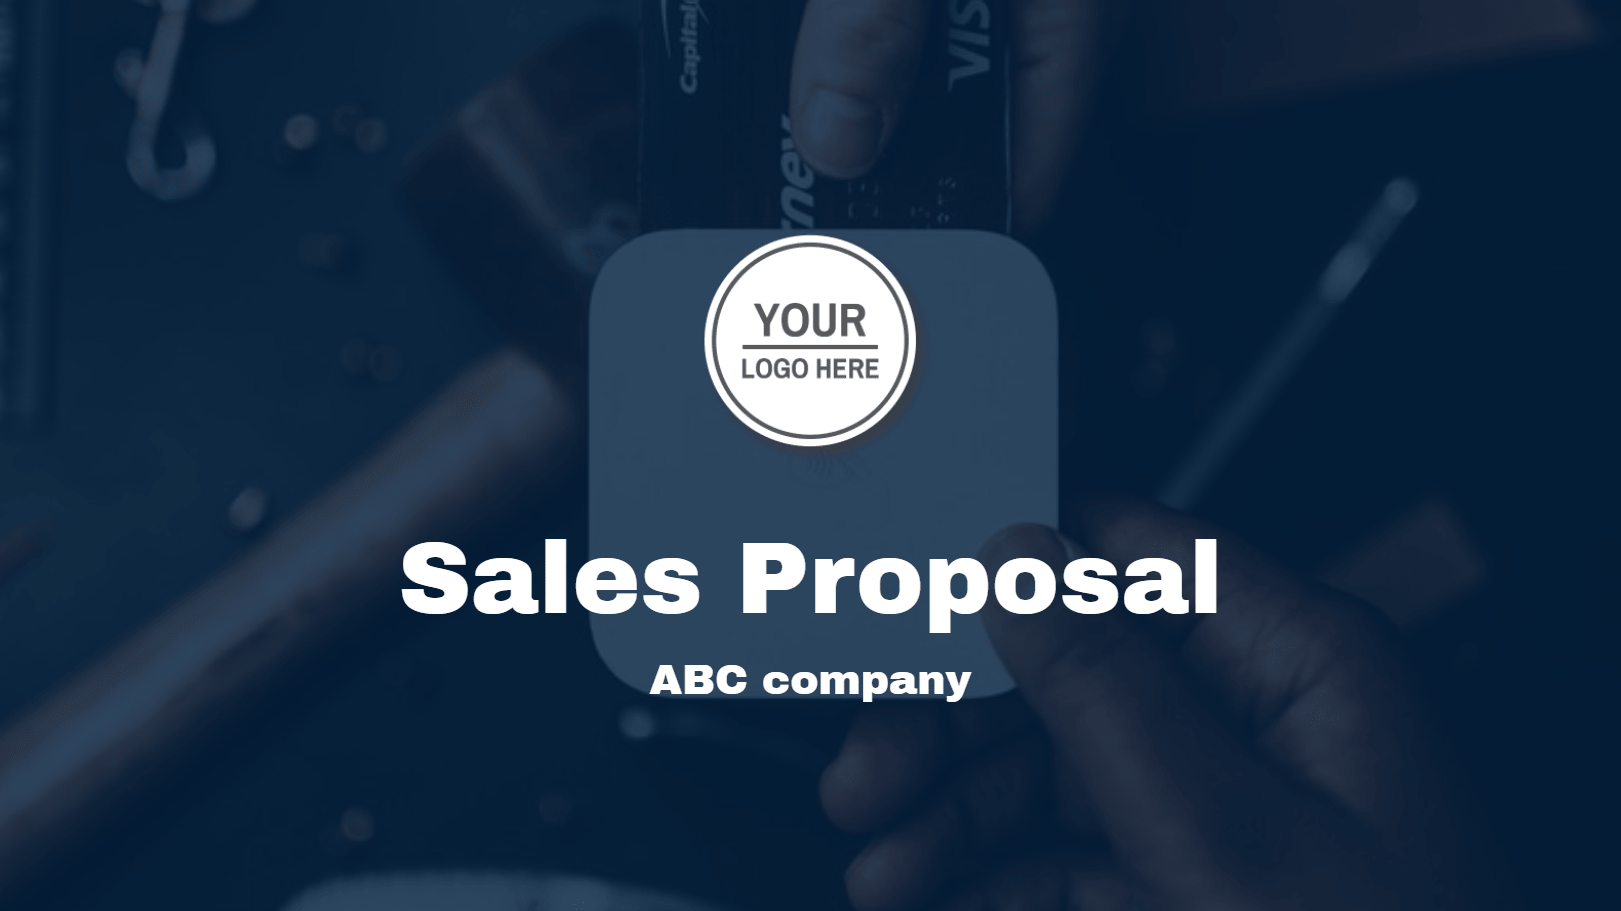 Sales proposals are one of the essential documents salespeople use and refine. This sales proposal template is prepared to kickstart a sales offer and take the tension out of sales teams. This template contains the most critical bullet points that should be included in every sales deal.